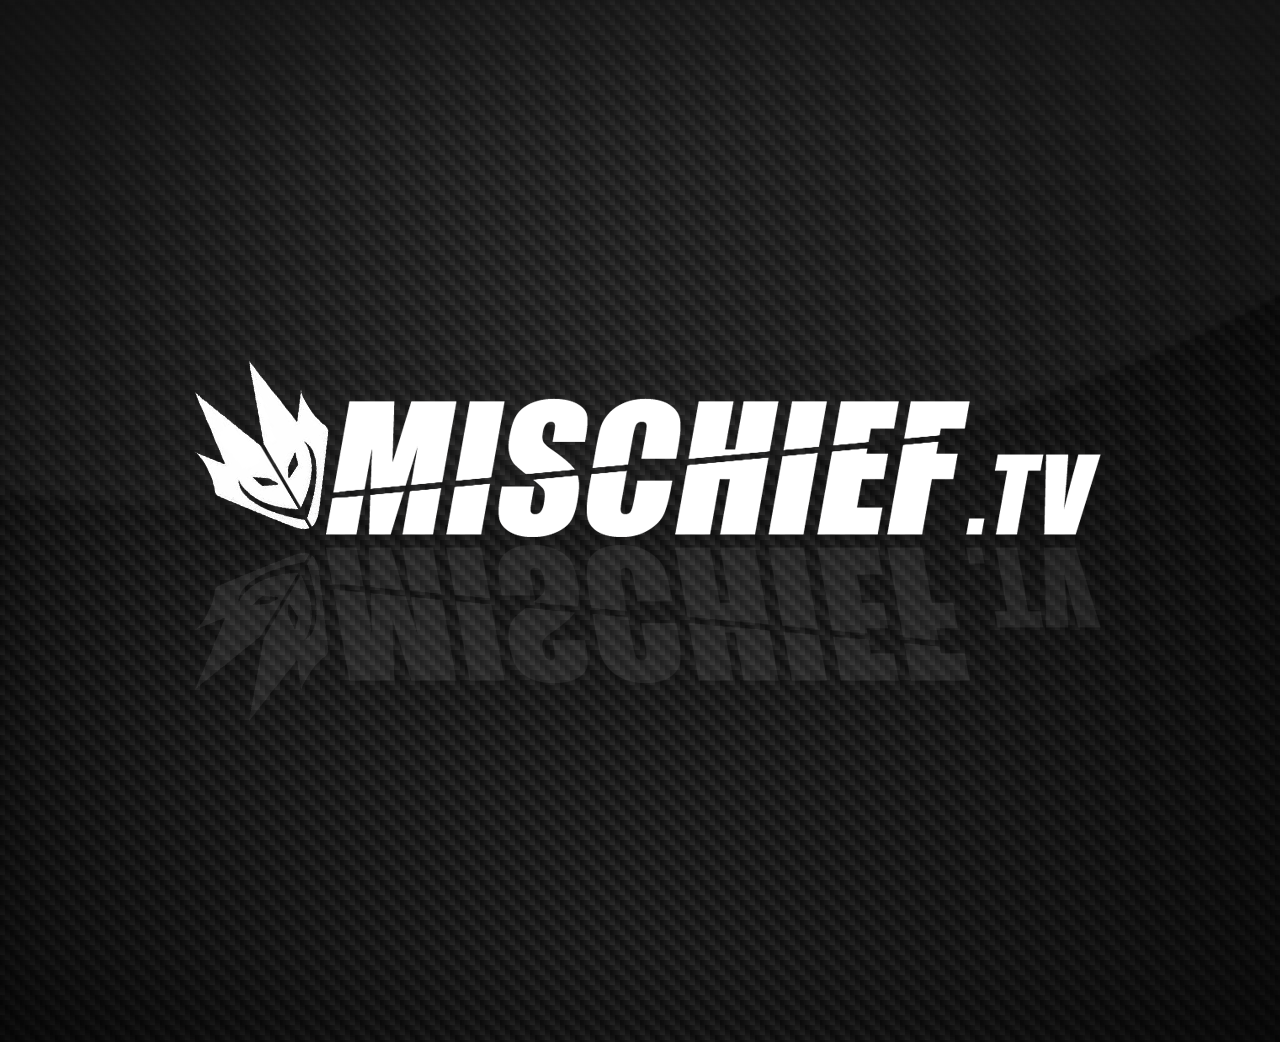 Mischief.TV will also be on hand to cover the event.